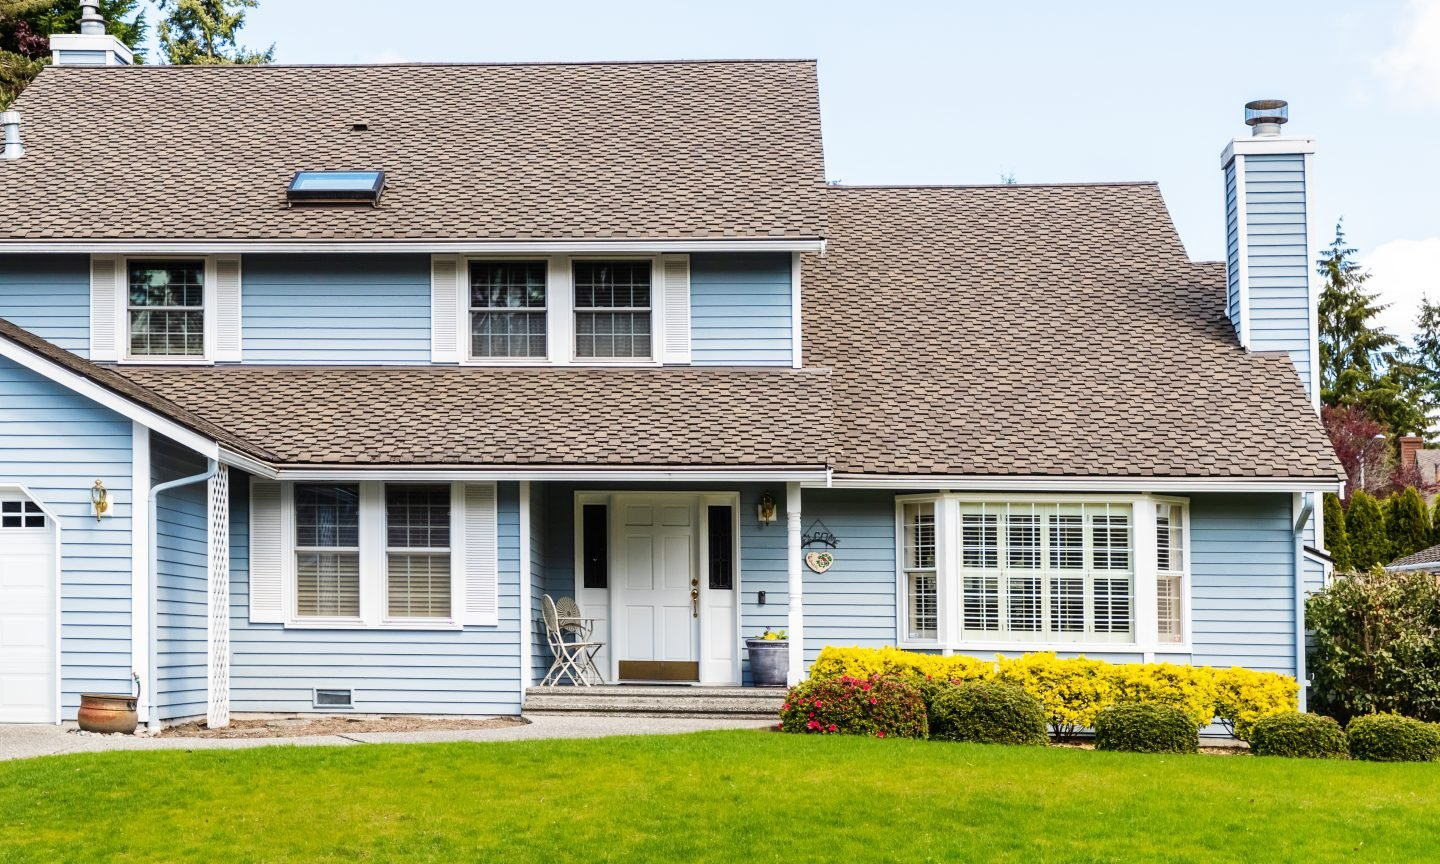 10 Best Lenders for Low- and No-Down-Payment Mortgages in 2020